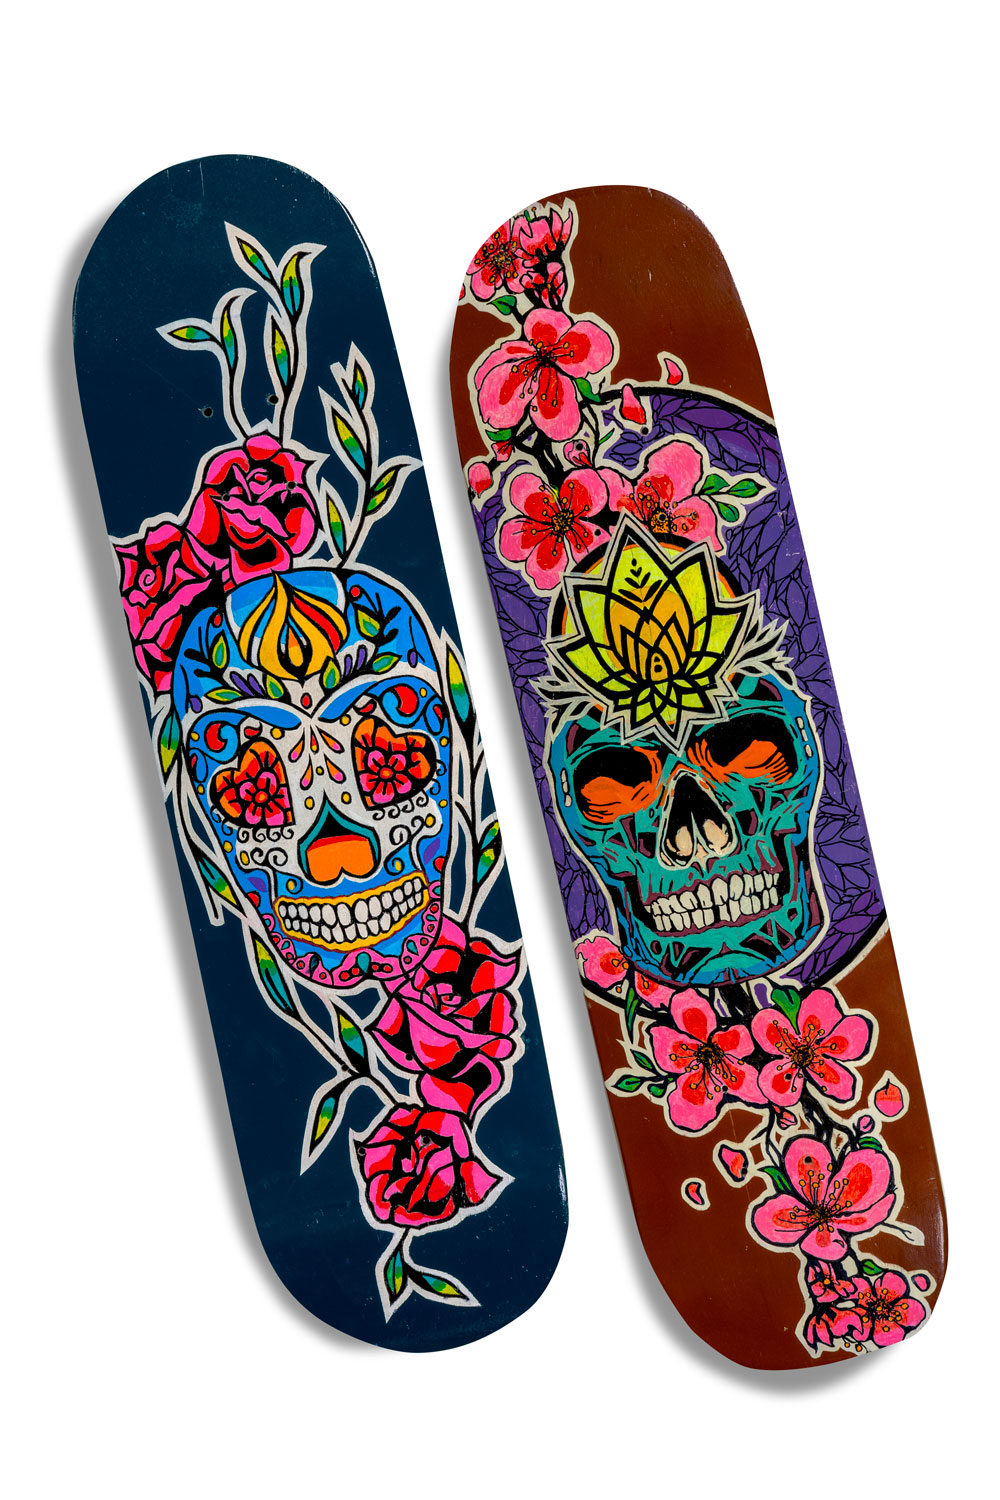 Calaveras Series By Nicolas Simon 8